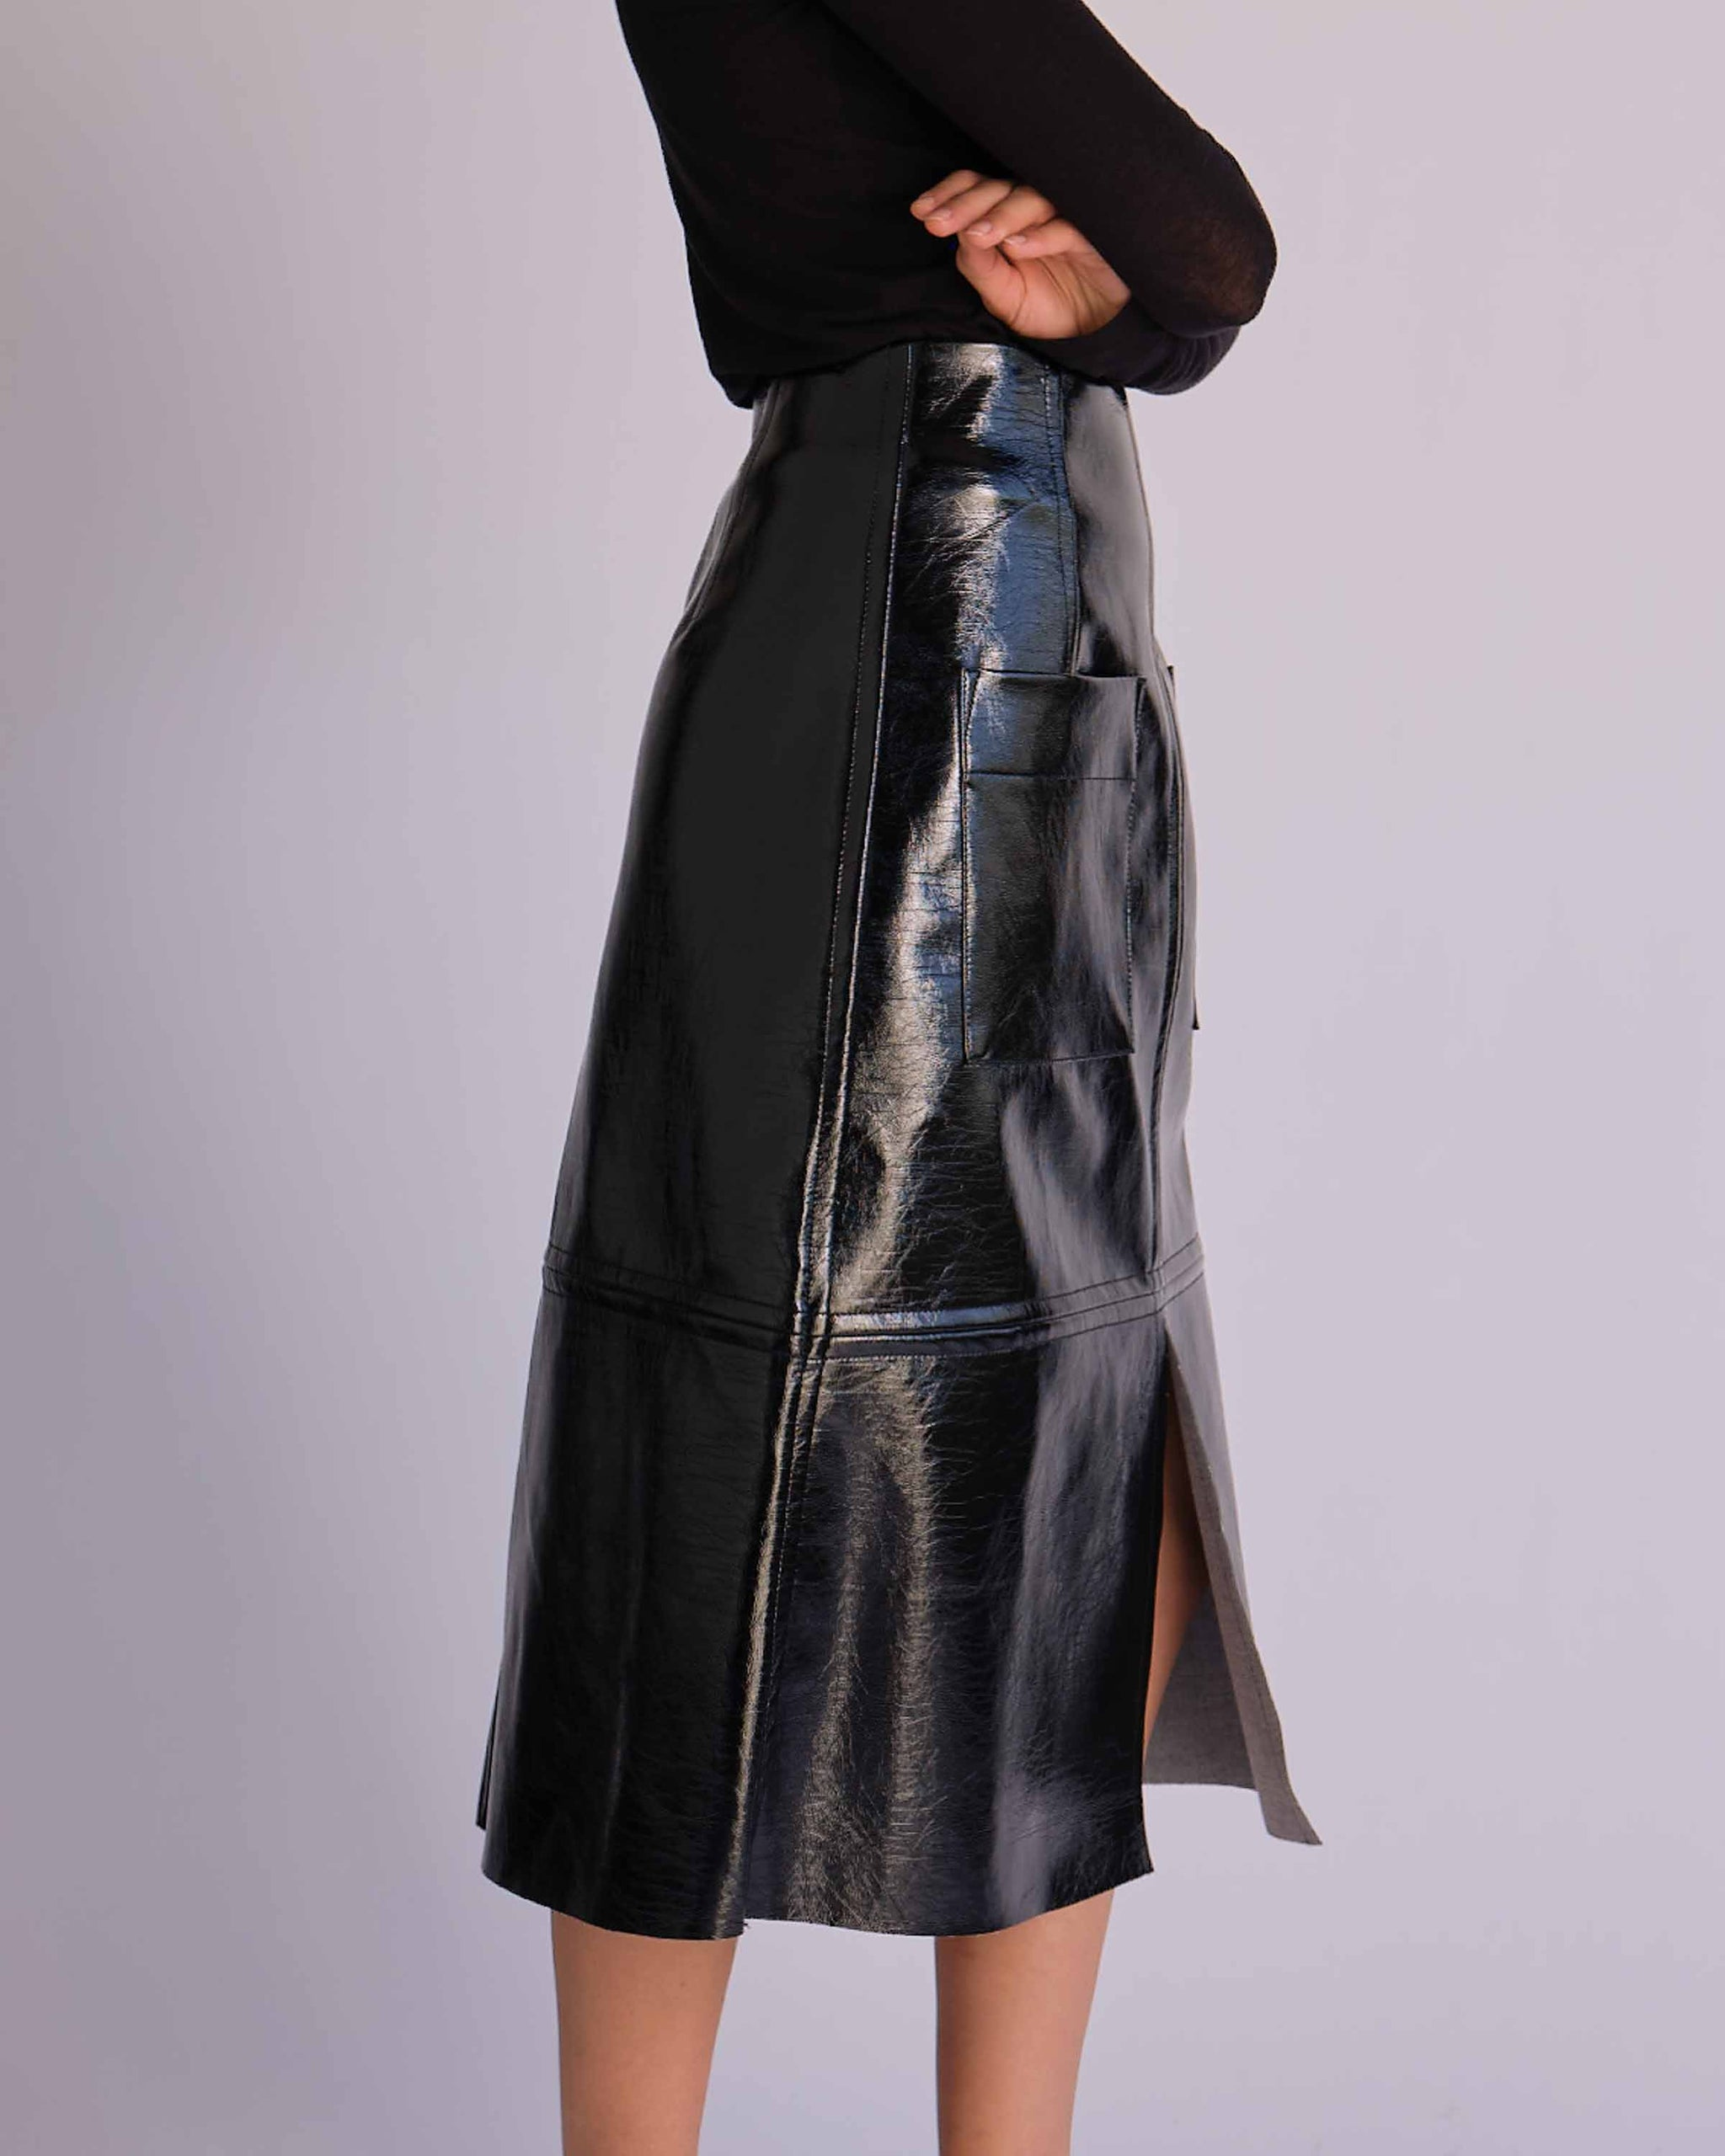 Black Patent Faux Leather Skirt